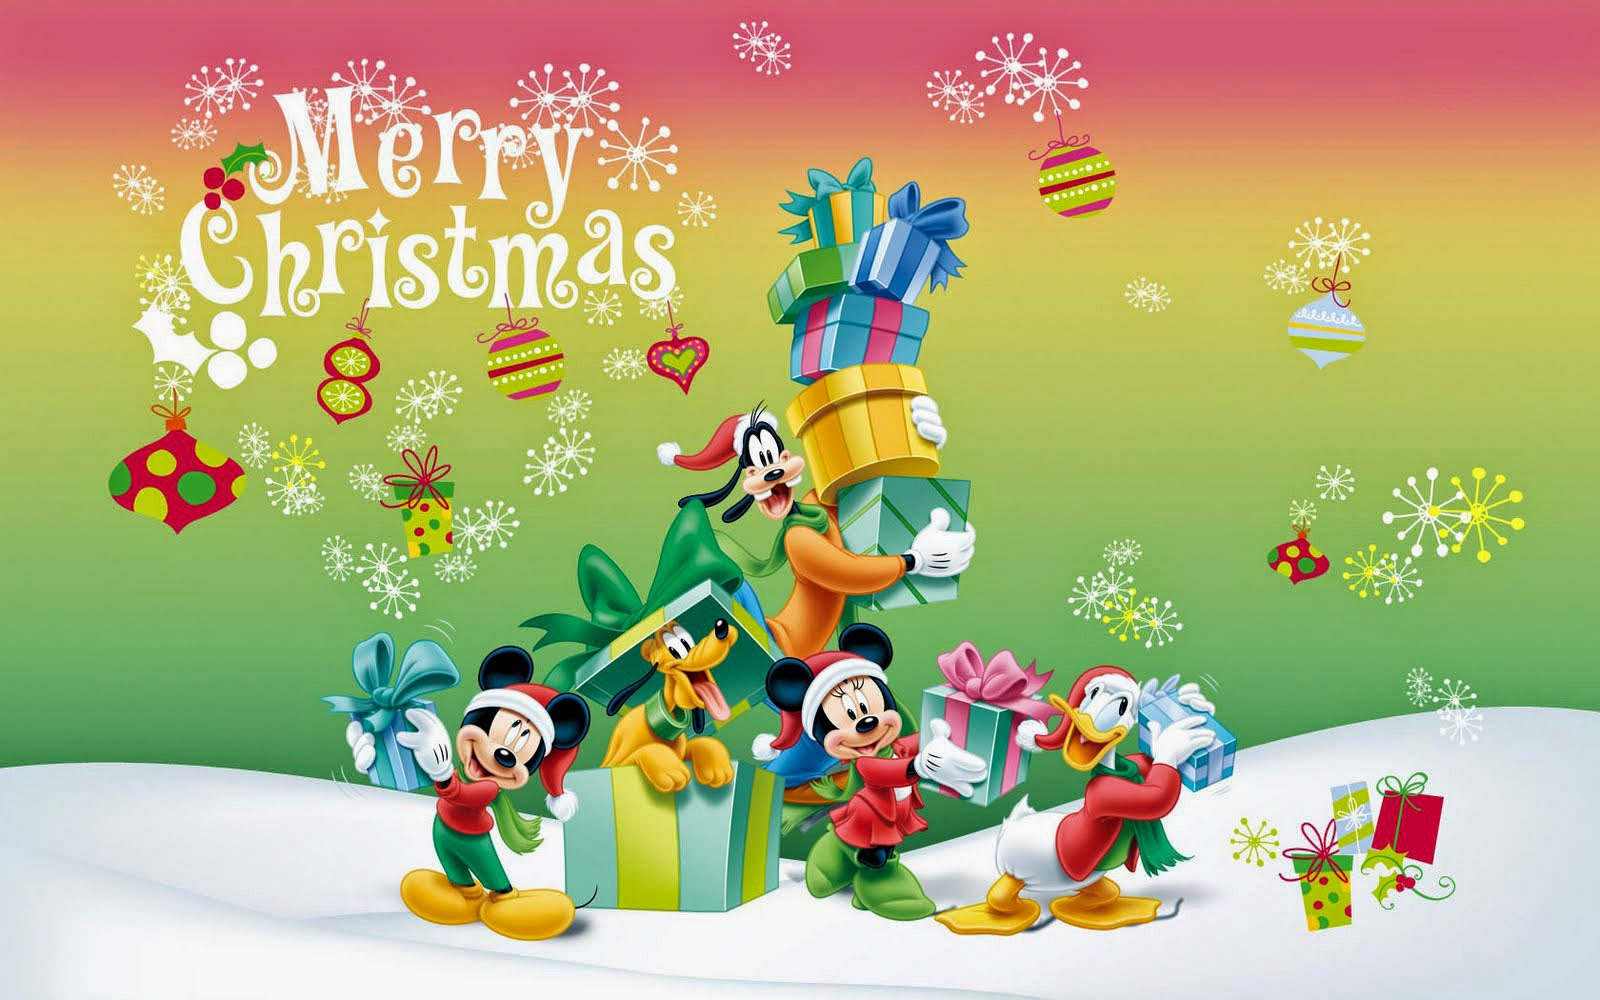 Beautiful Greeting Cards Images of Christmas 2014